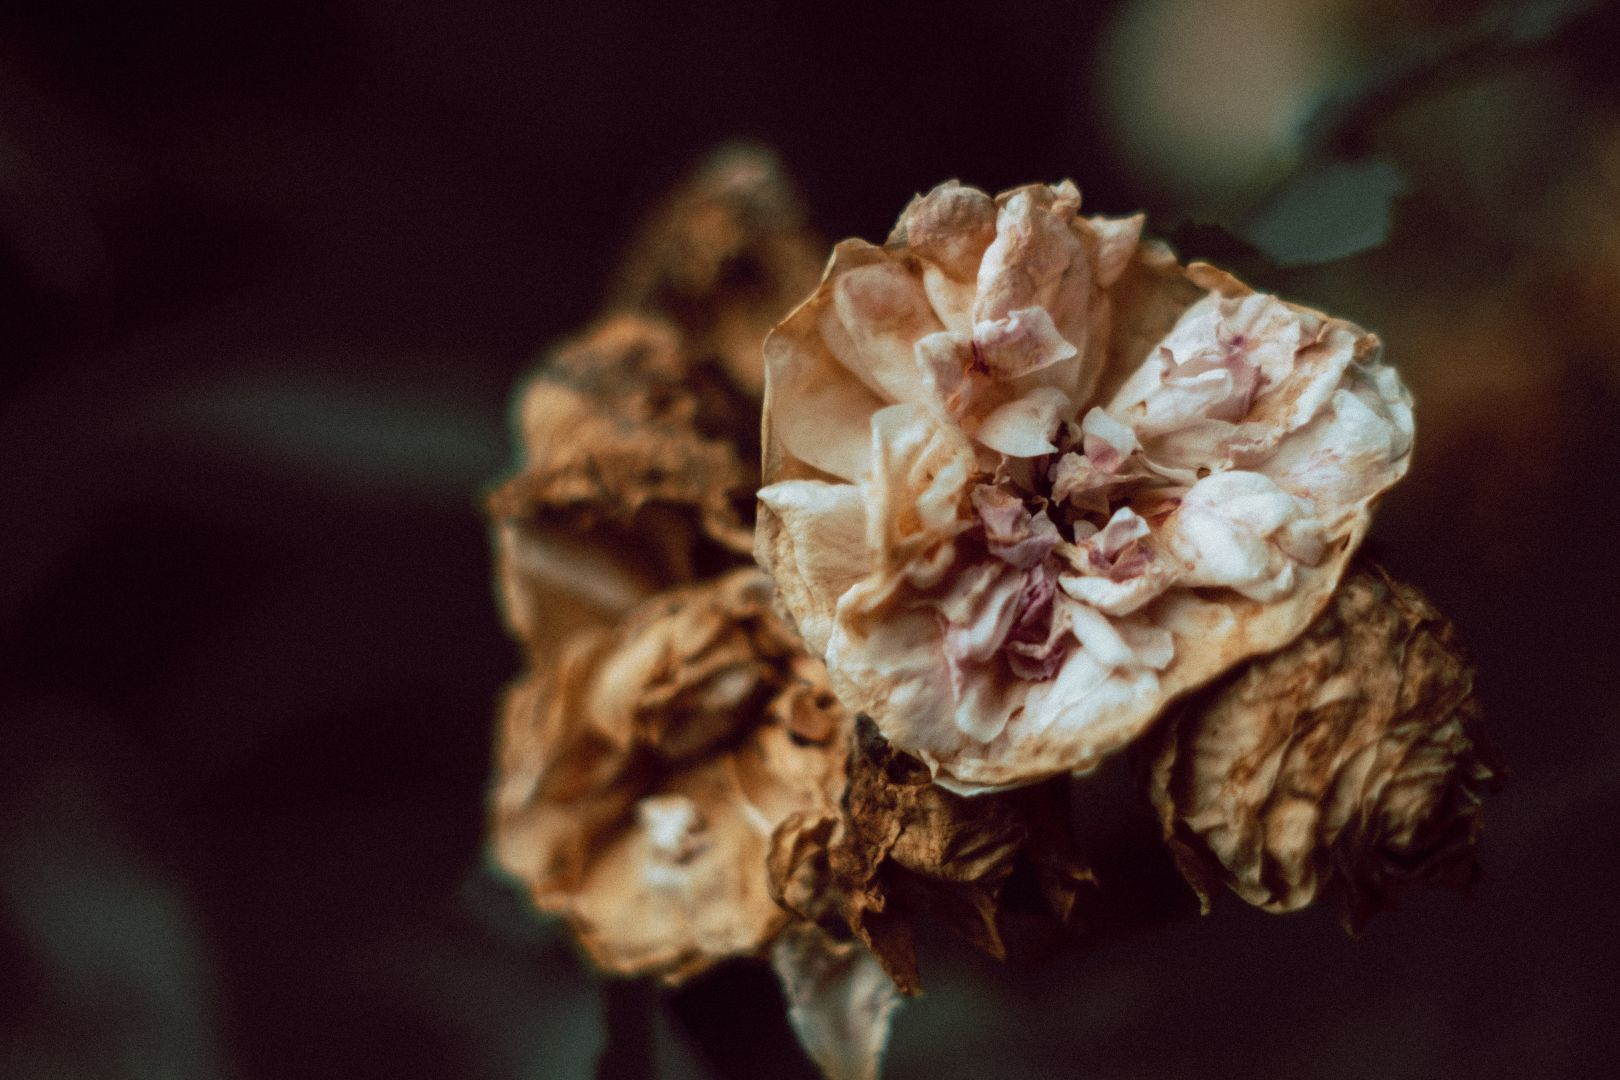 A photo depicting Dying Flower Closeup